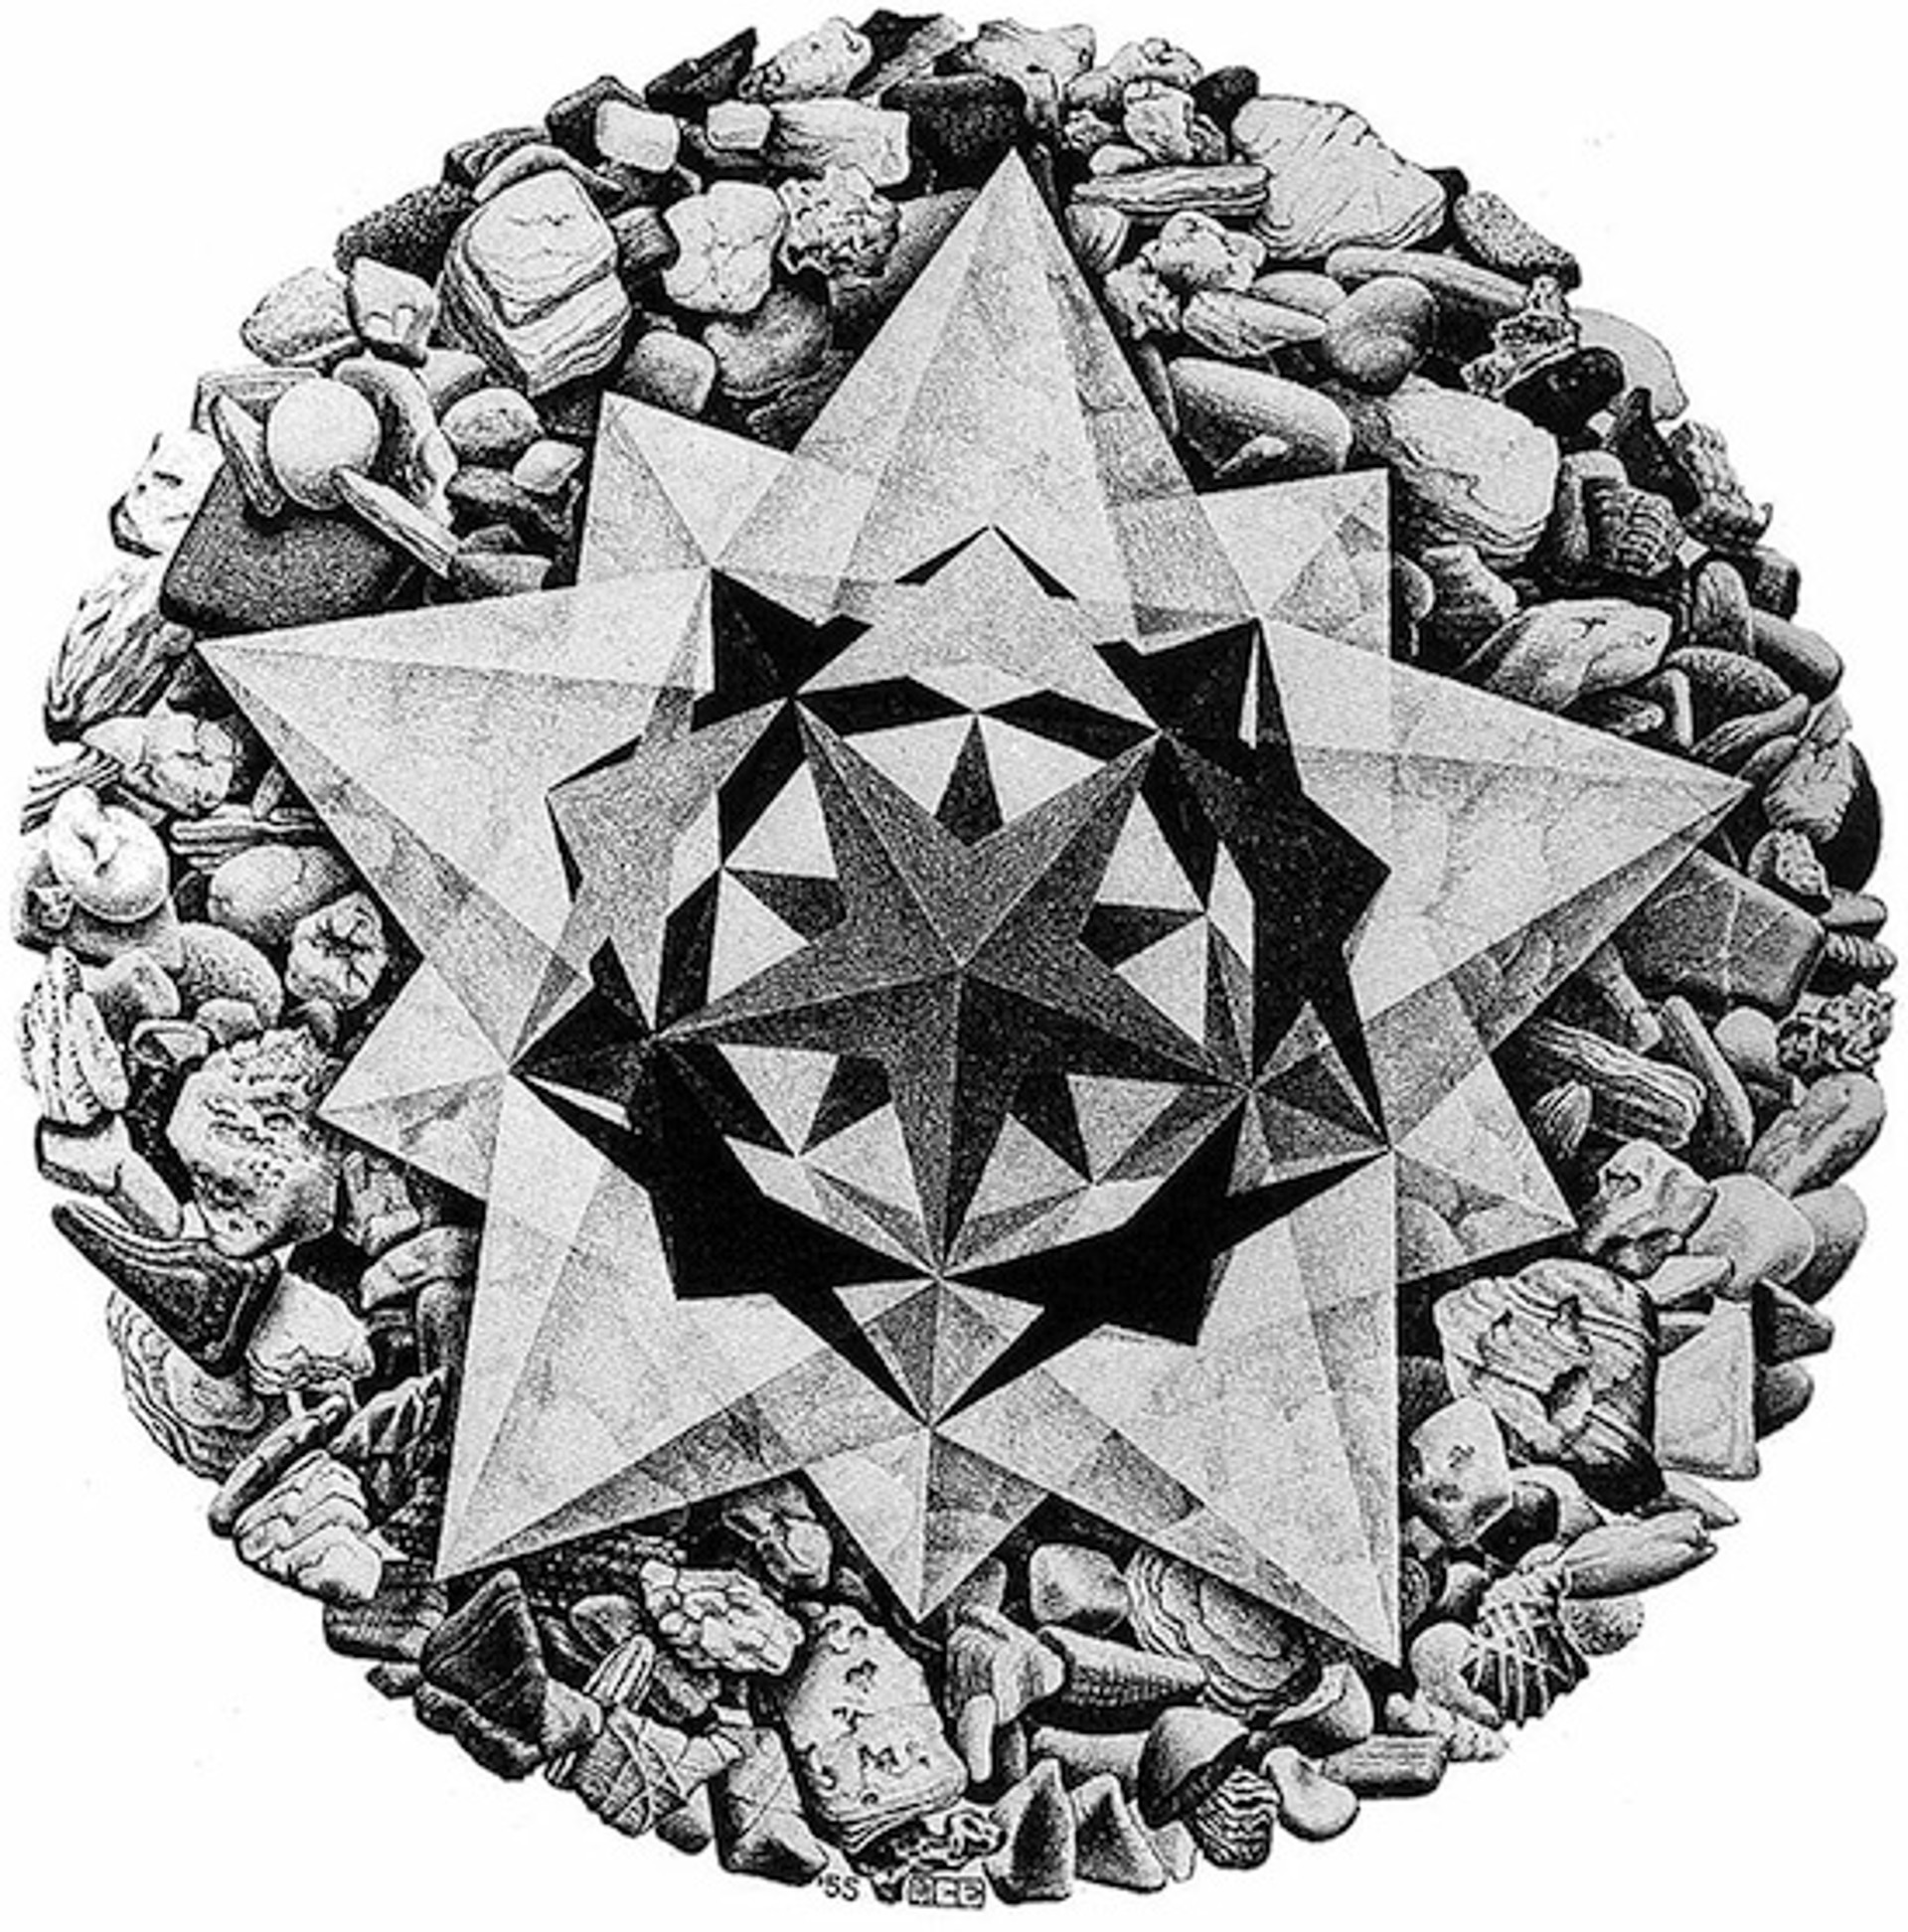 Order and Chaos II (Compass Rose) by M.C. Escher